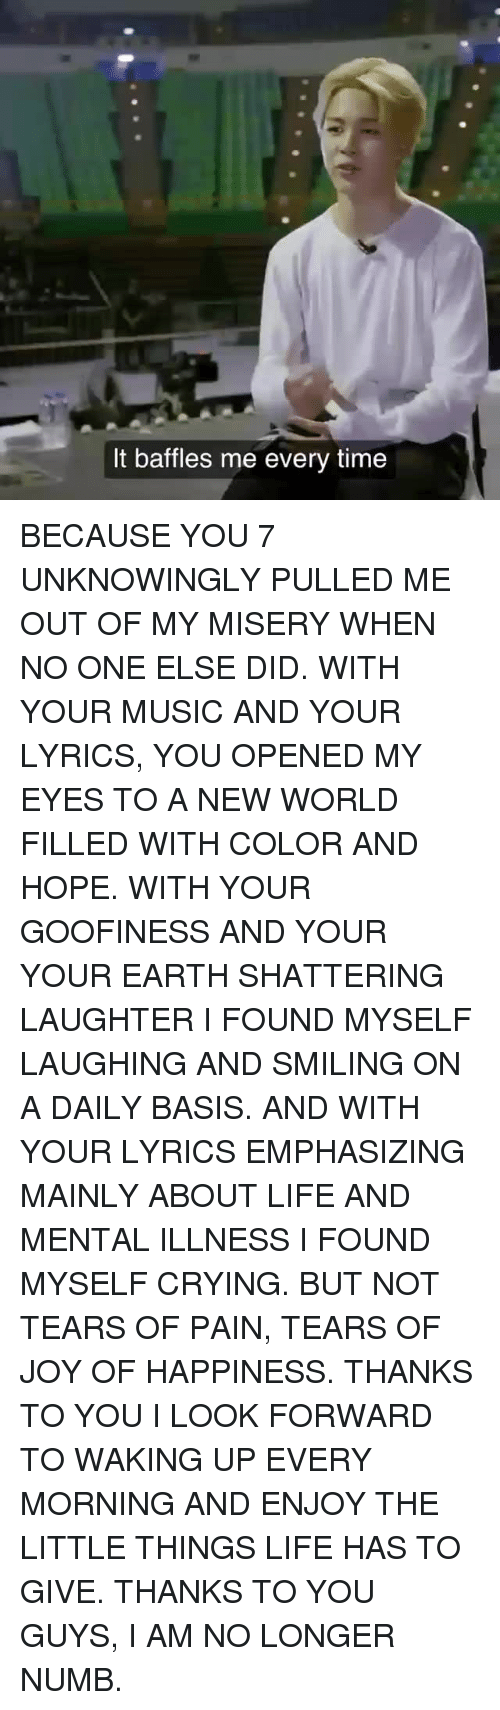 Crying, Life, and Music: It baffles me every time BECAUSE YOU 7 UNKNOWINGLY PULLED ME OUT OF MY MISERY WHEN NO ONE ELSE DID. WITH YOUR MUSIC AND YOUR LYRICS, YOU OPENED MY EYES TO A NEW WORLD FILLED WITH COLOR AND HOPE. WITH YOUR GOOFINESS AND YOUR YOUR EARTH SHATTERING LAUGHTER I FOUND MYSELF LAUGHING AND SMILING ON A DAILY BASIS. AND WITH YOUR LYRICS EMPHASIZING MAINLY ABOUT LIFE AND MENTAL ILLNESS I FOUND MYSELF CRYING. BUT NOT TEARS OF PAIN, TEARS OF JOY OF HAPPINESS. THANKS TO YOU I LOOK FORWARD TO WAKING UP EVERY MORNING AND ENJOY THE LITTLE THINGS LIFE HAS TO GIVE. THANKS TO YOU GUYS, I AM NO LONGER NUMB.